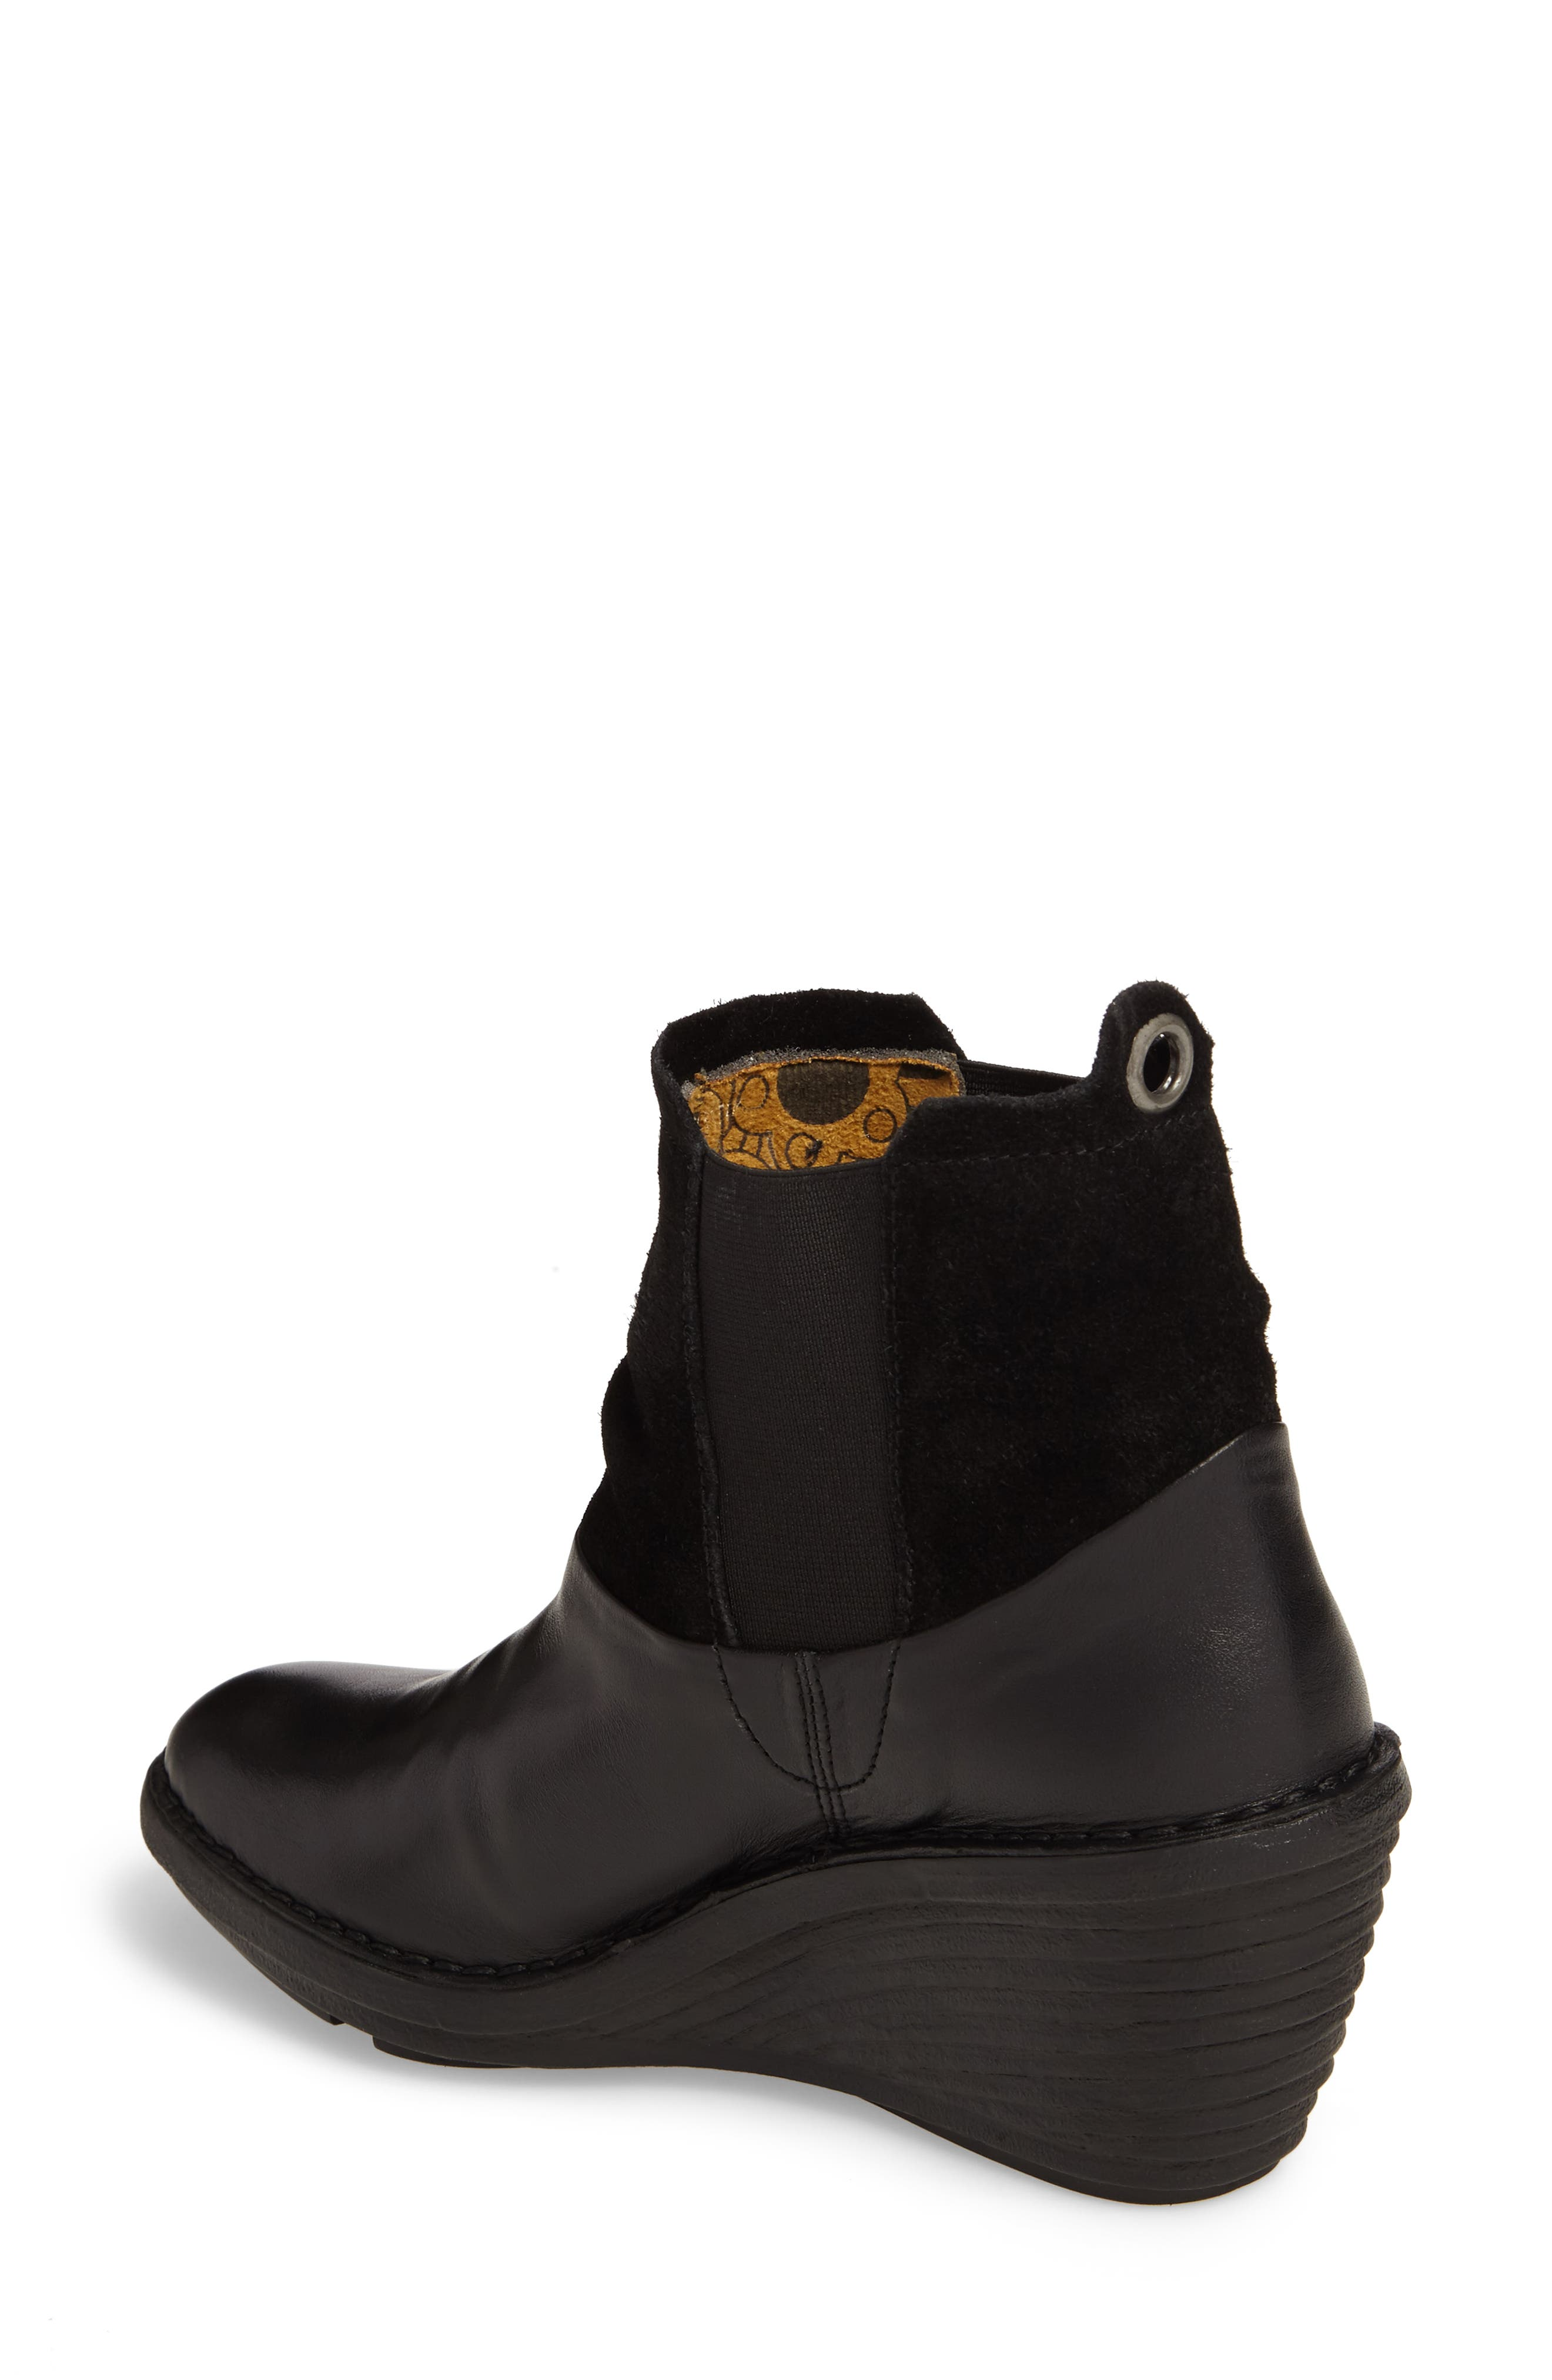 Alternate Image 2  - Fly London Sula Wedge Bootie (Women)